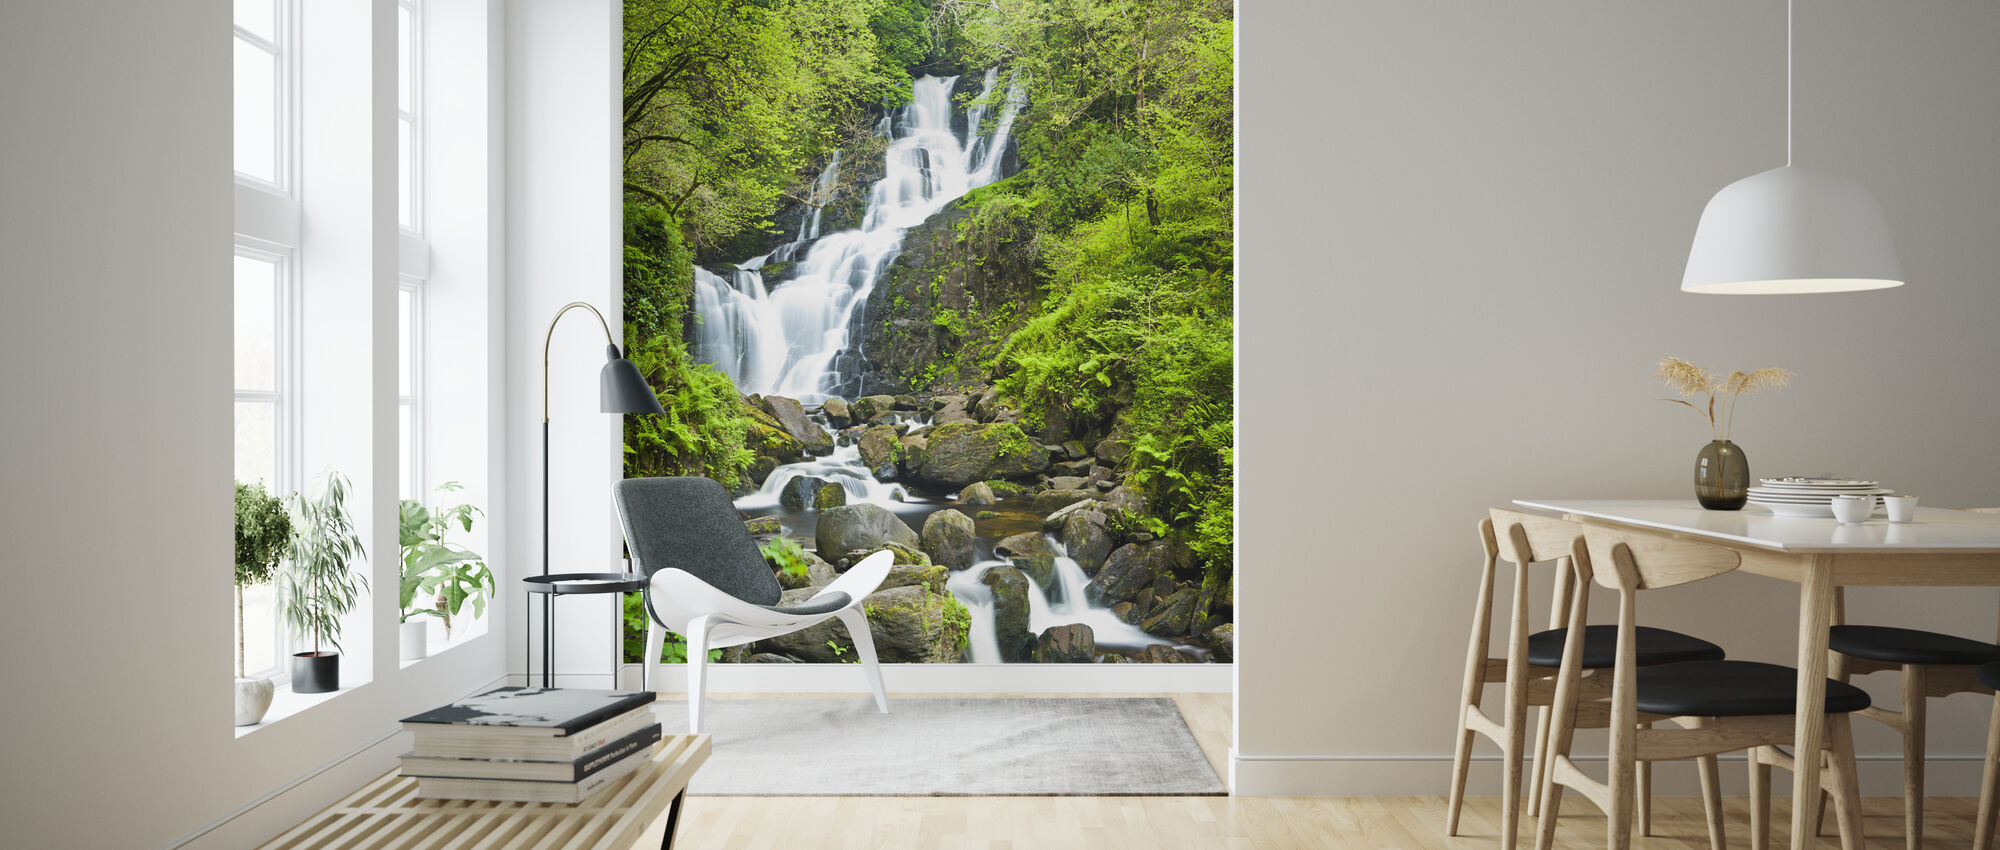 Torc Waterfall - Wallpaper - Living Room